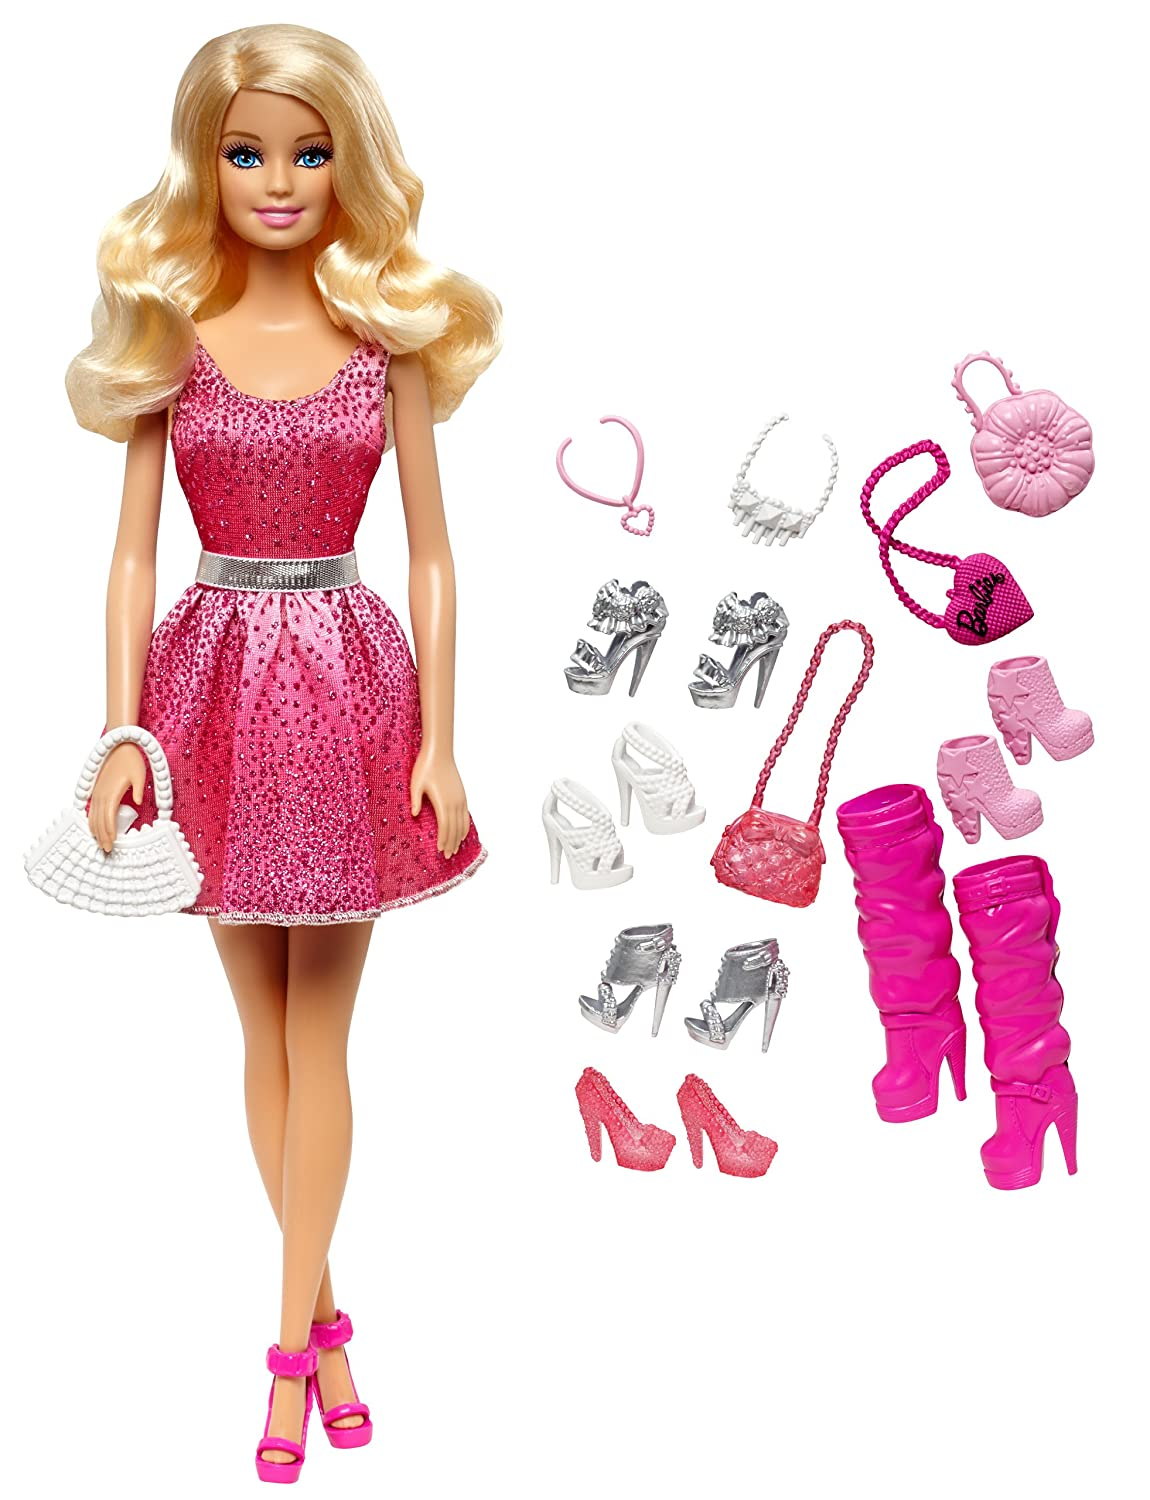 cce21a7ce36e29 Amazon.com  Barbie Doll and Shoes Giftset  Toys   Games